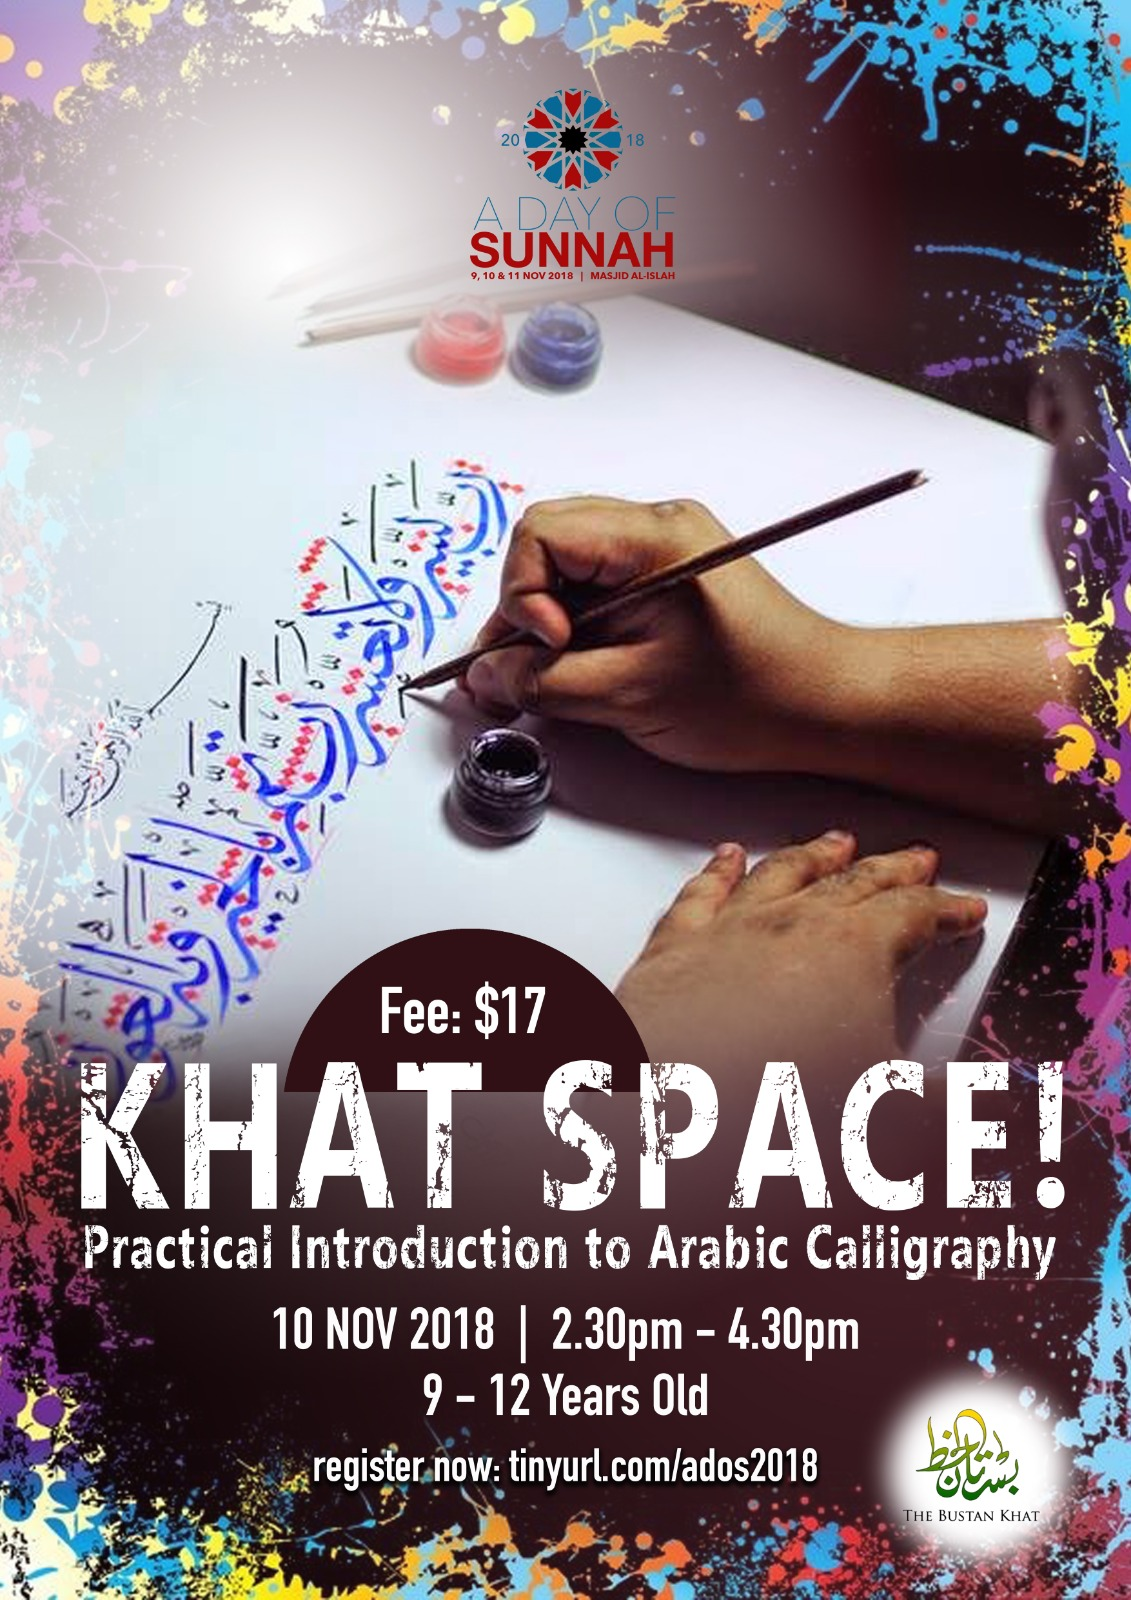 Khat Space! Practical Introduction to Arabic Calligraphy (Registration Closed)